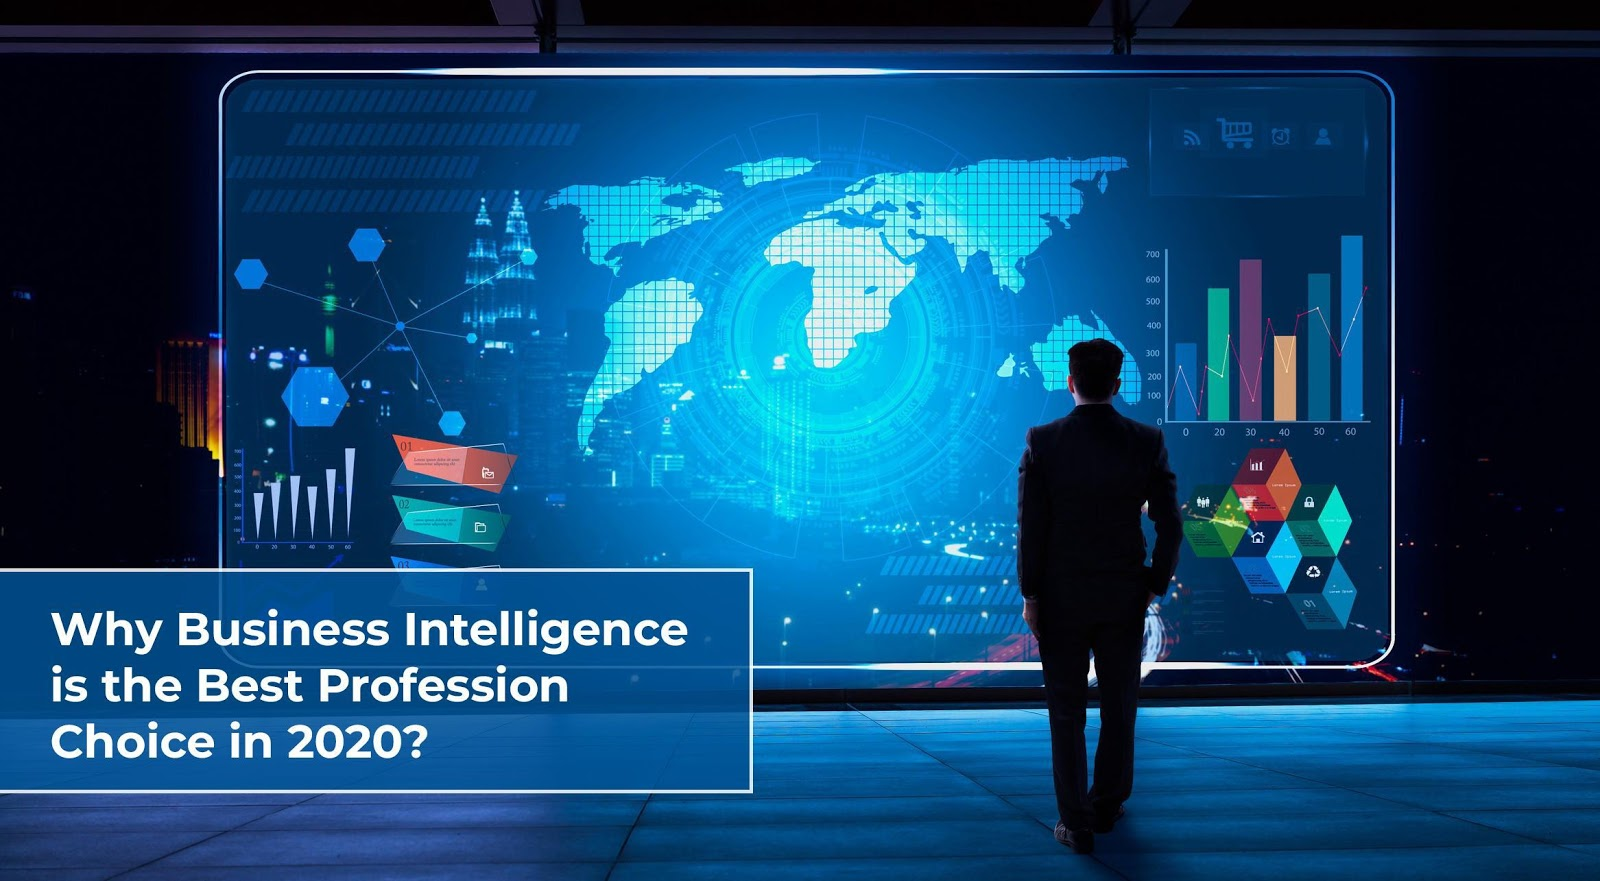 Scope of Business Intelligence in Future as Good Carrier Option – 2020